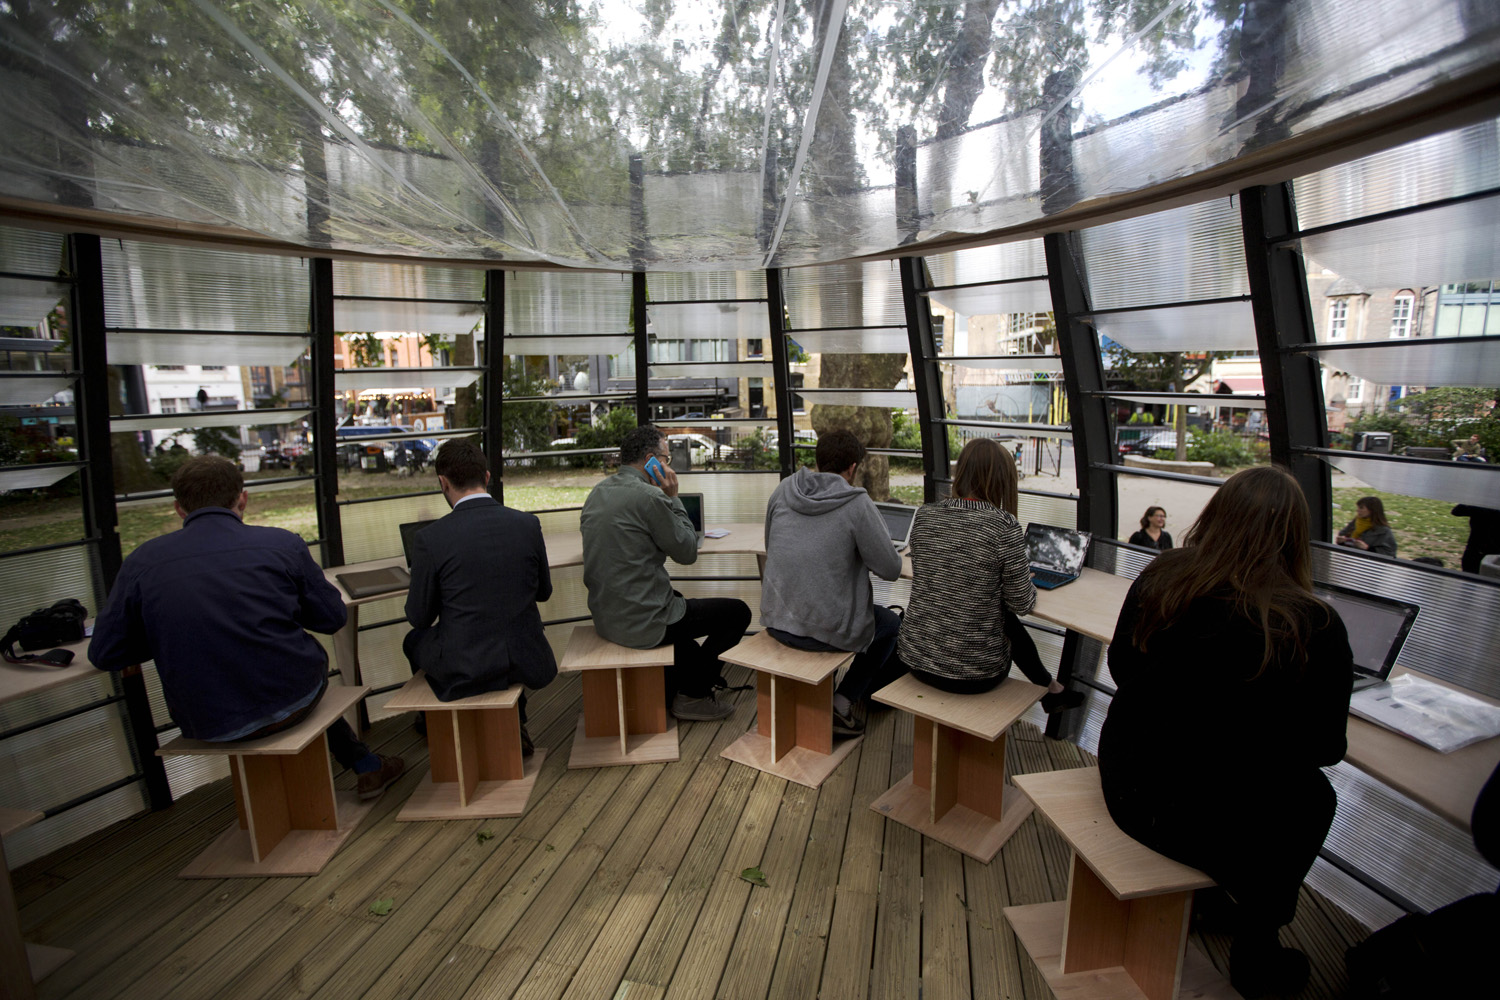 People pose for the media and work during an event to launch TREExOFFICE, a prototype pop-up tree office, in Hoxton Square, London. (Matt Dunham/AP)